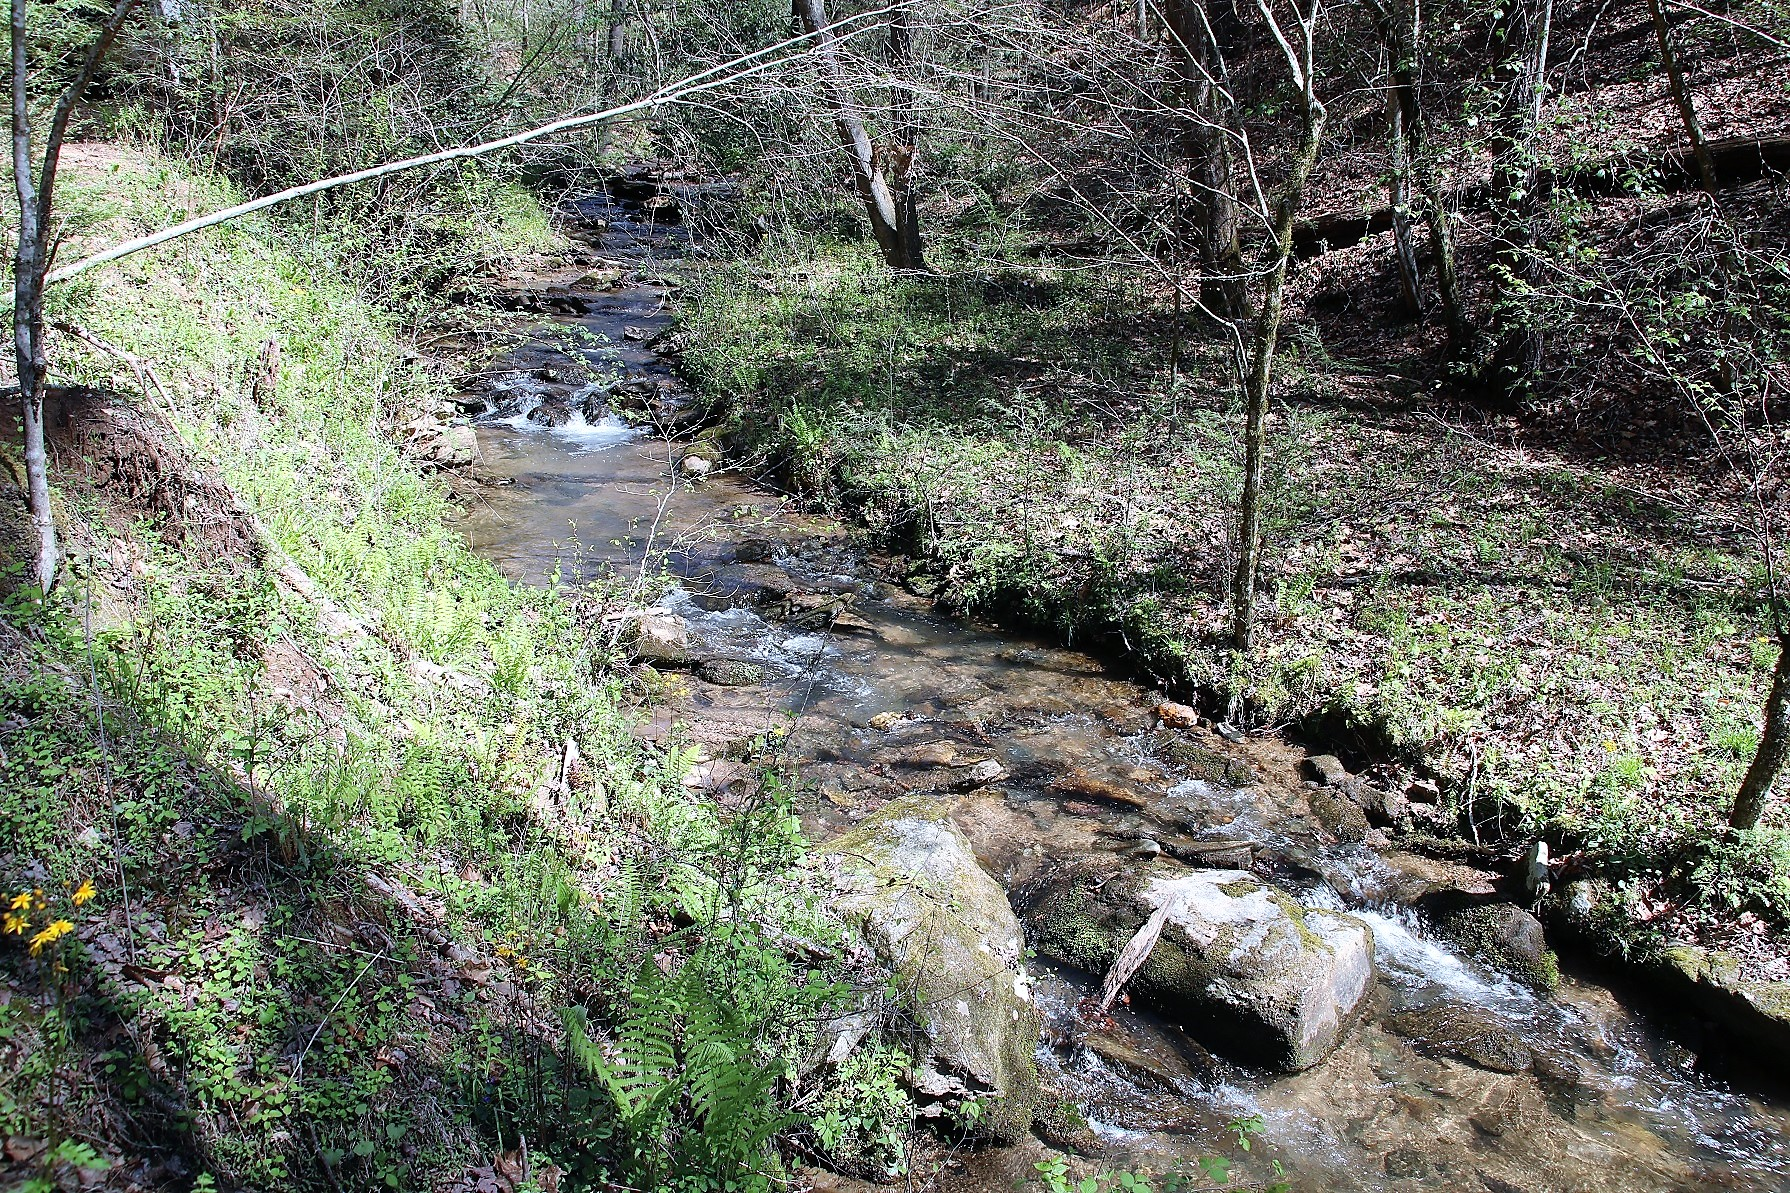 LAND FOR SALE 10 ACRES ON FLAG BRANCH CREEK IN WESTERN NORTH CAROLINA LEATHERWOOD MOUNTAINS